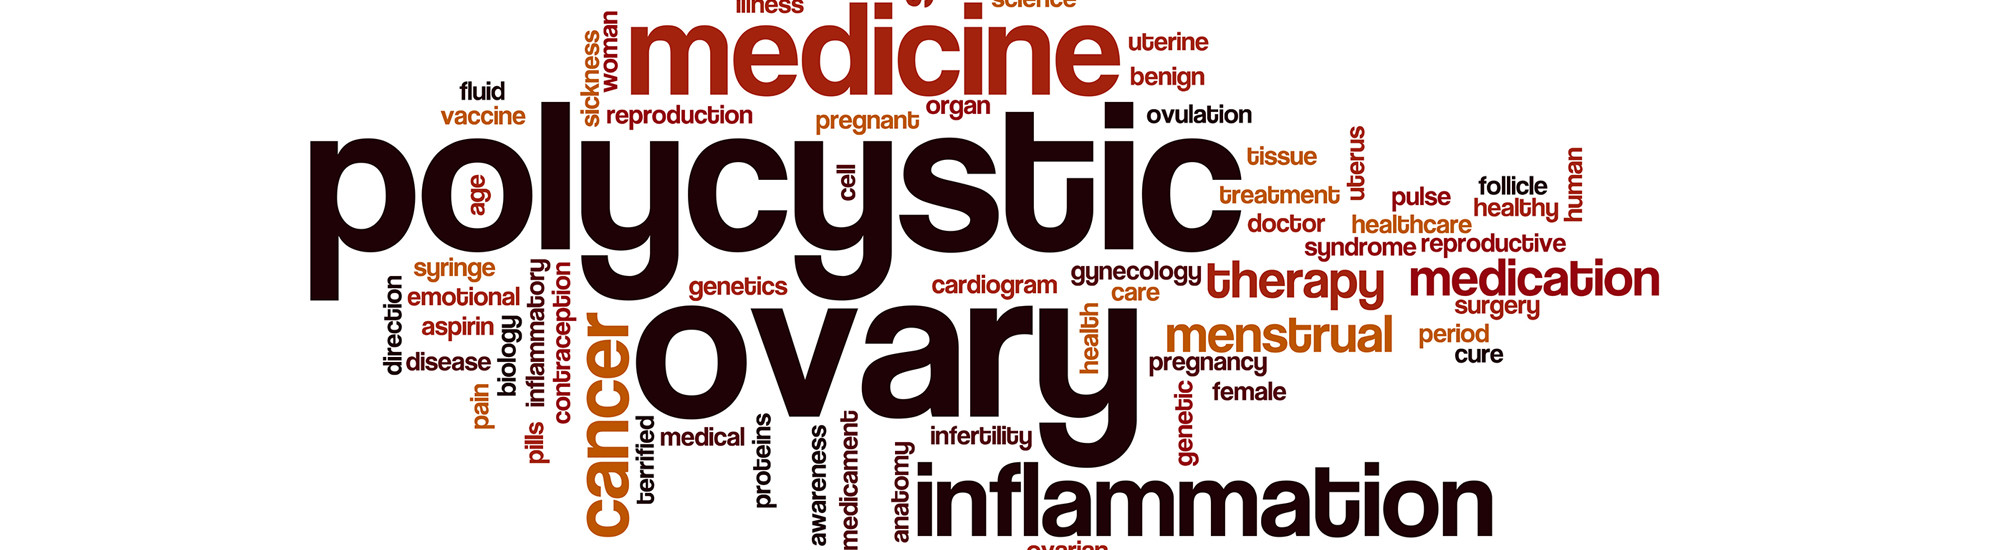 Ayurvedic treatment for Polycystic ovary syndrome-Disease -PCOS or PCOD-  Causes